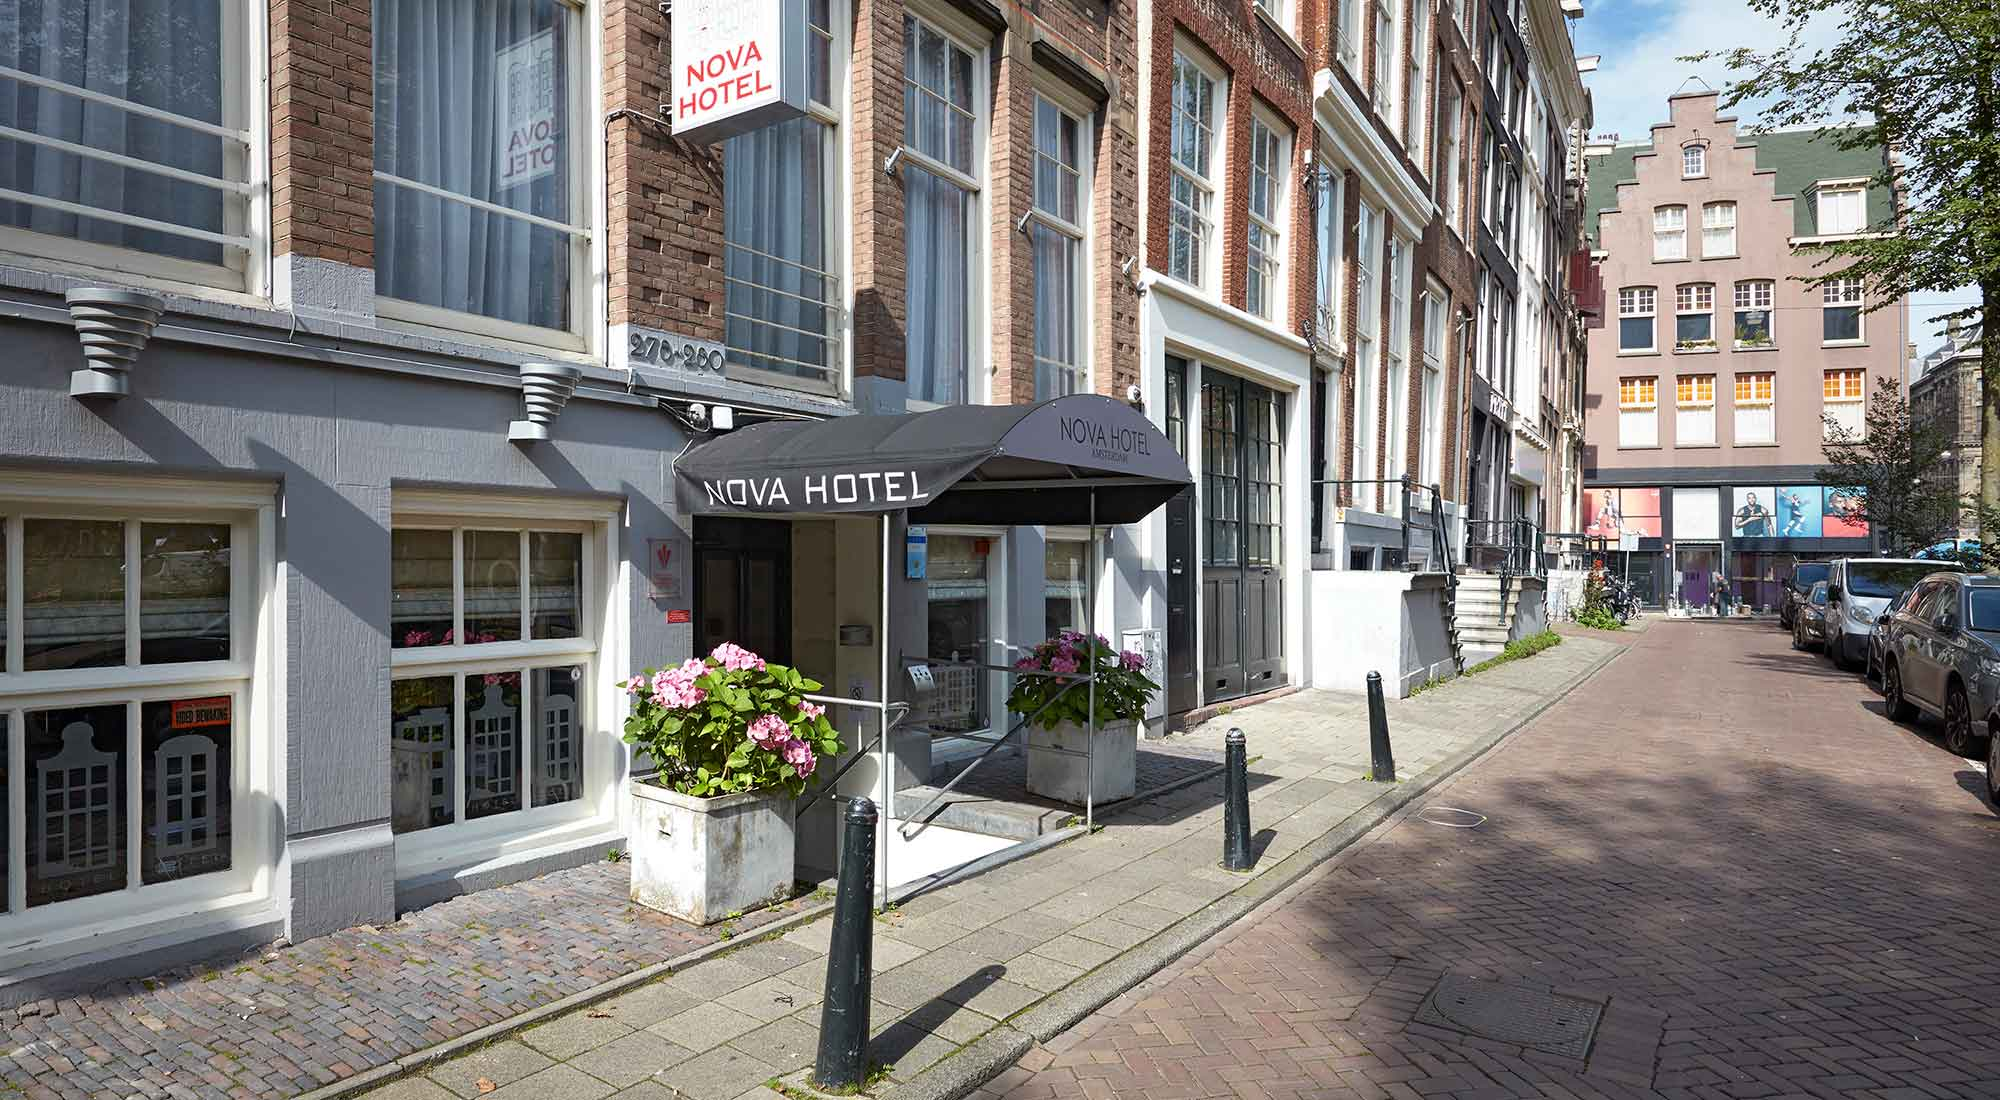 Nova hotel apartments 3 sterren hotel en accommodatie for Amsterdam hotel